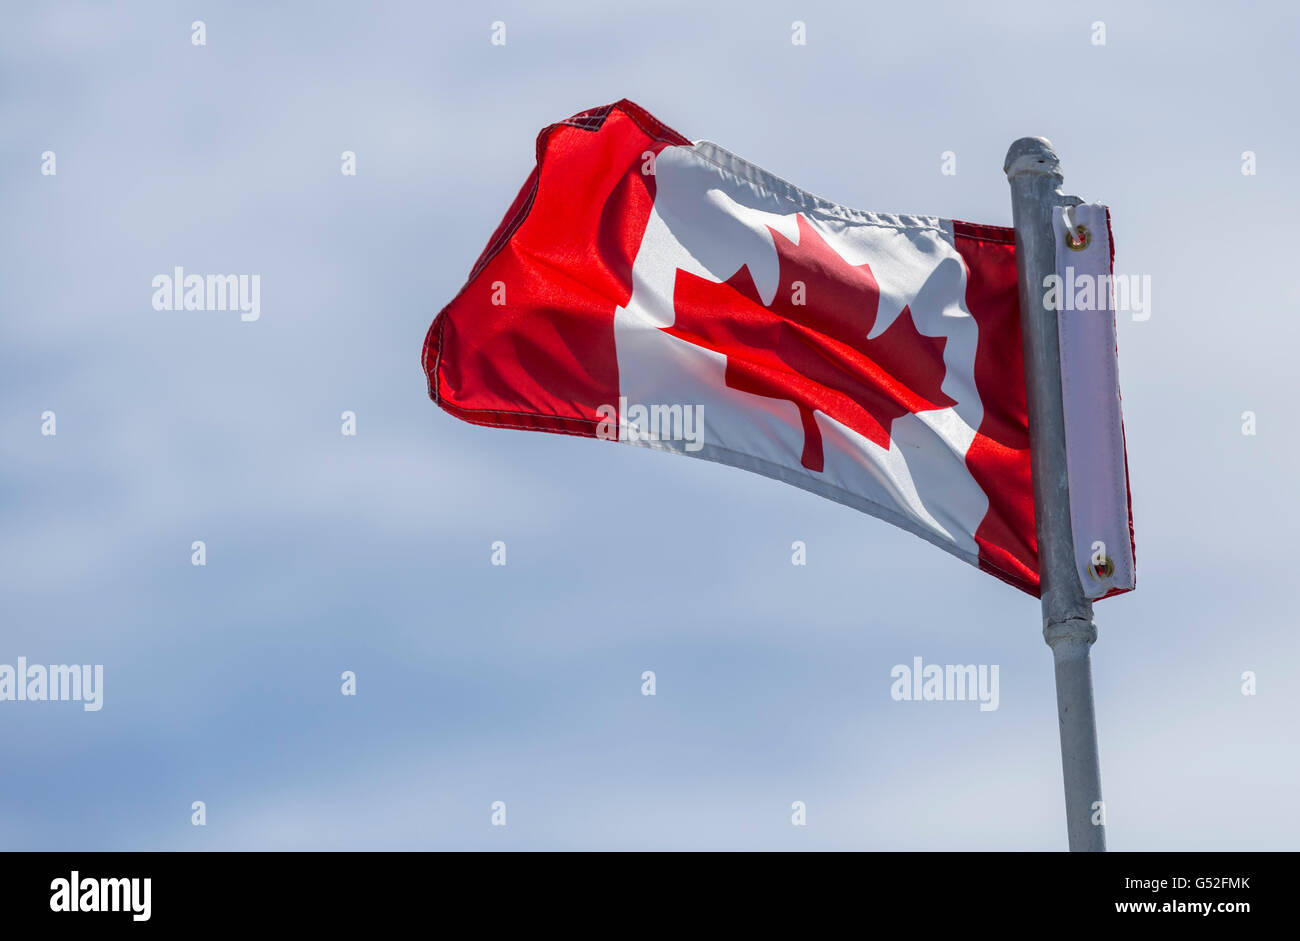 Canadian flag against a cloudy sky - Stock Image